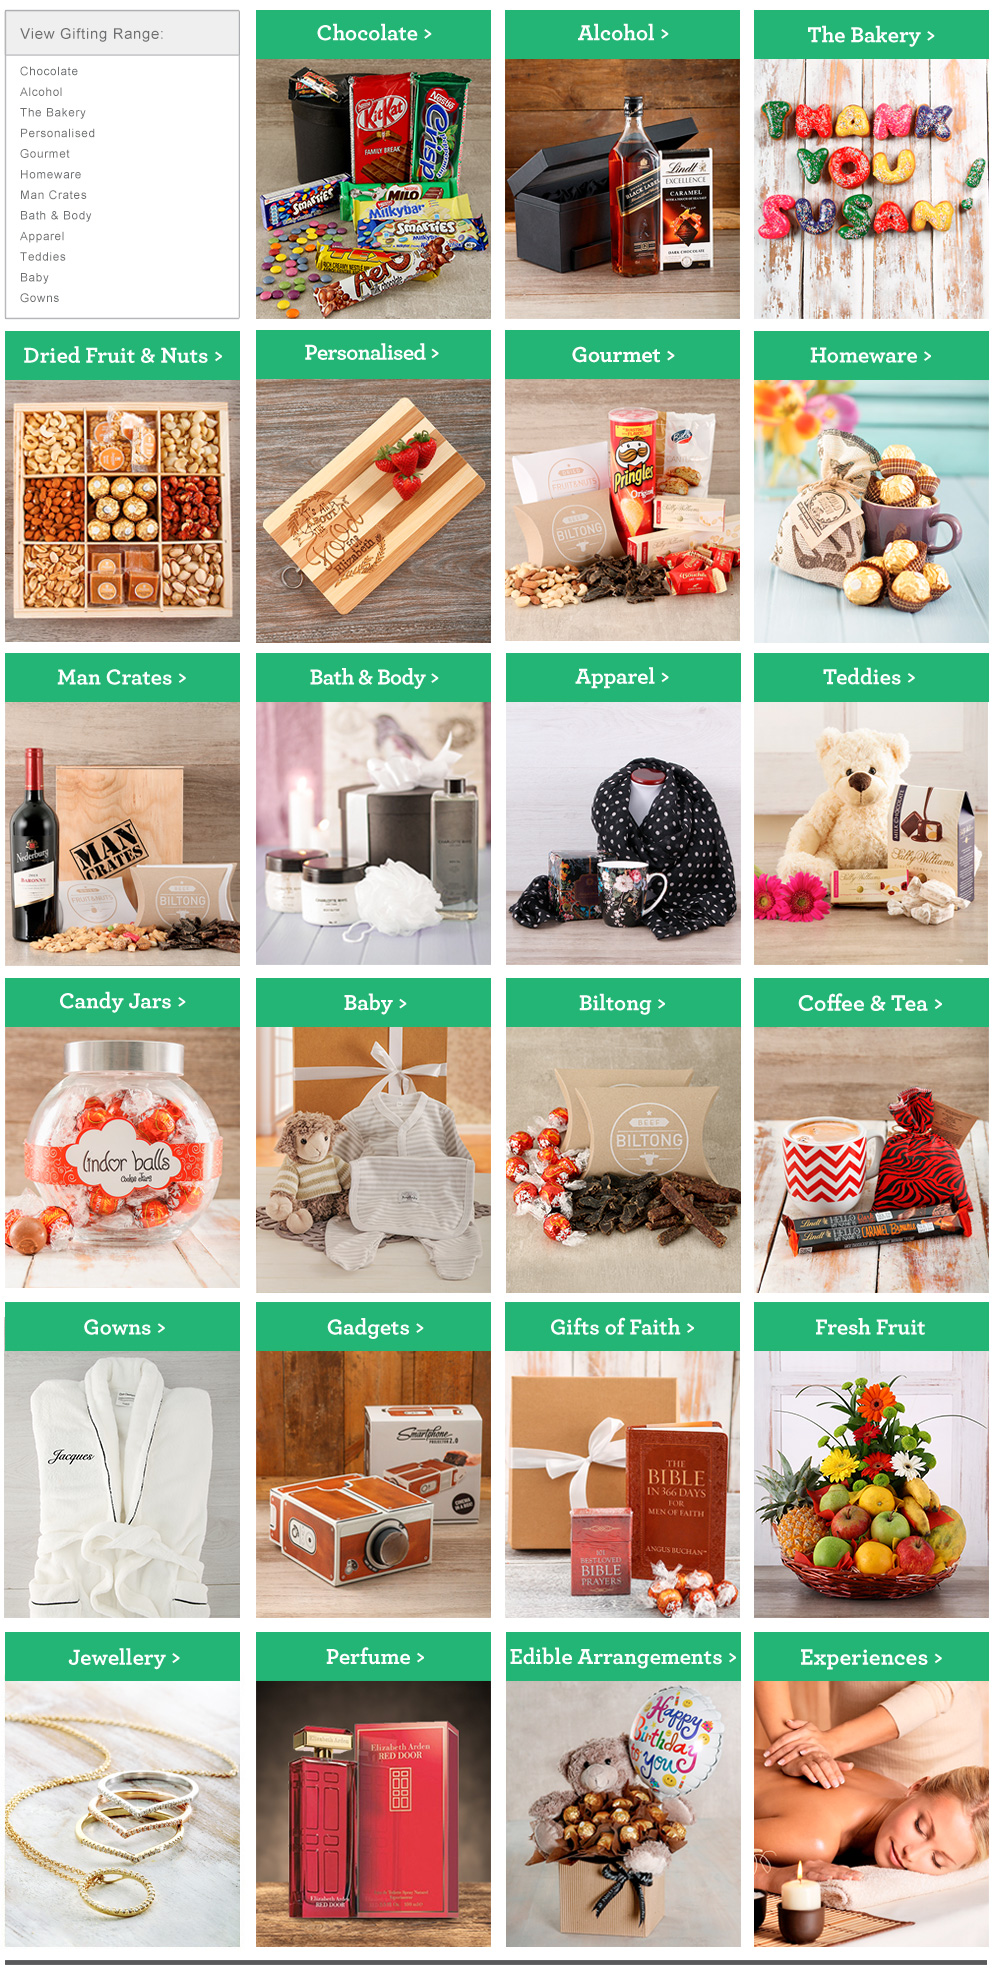 Shop Gifting Amazing Gifts Online